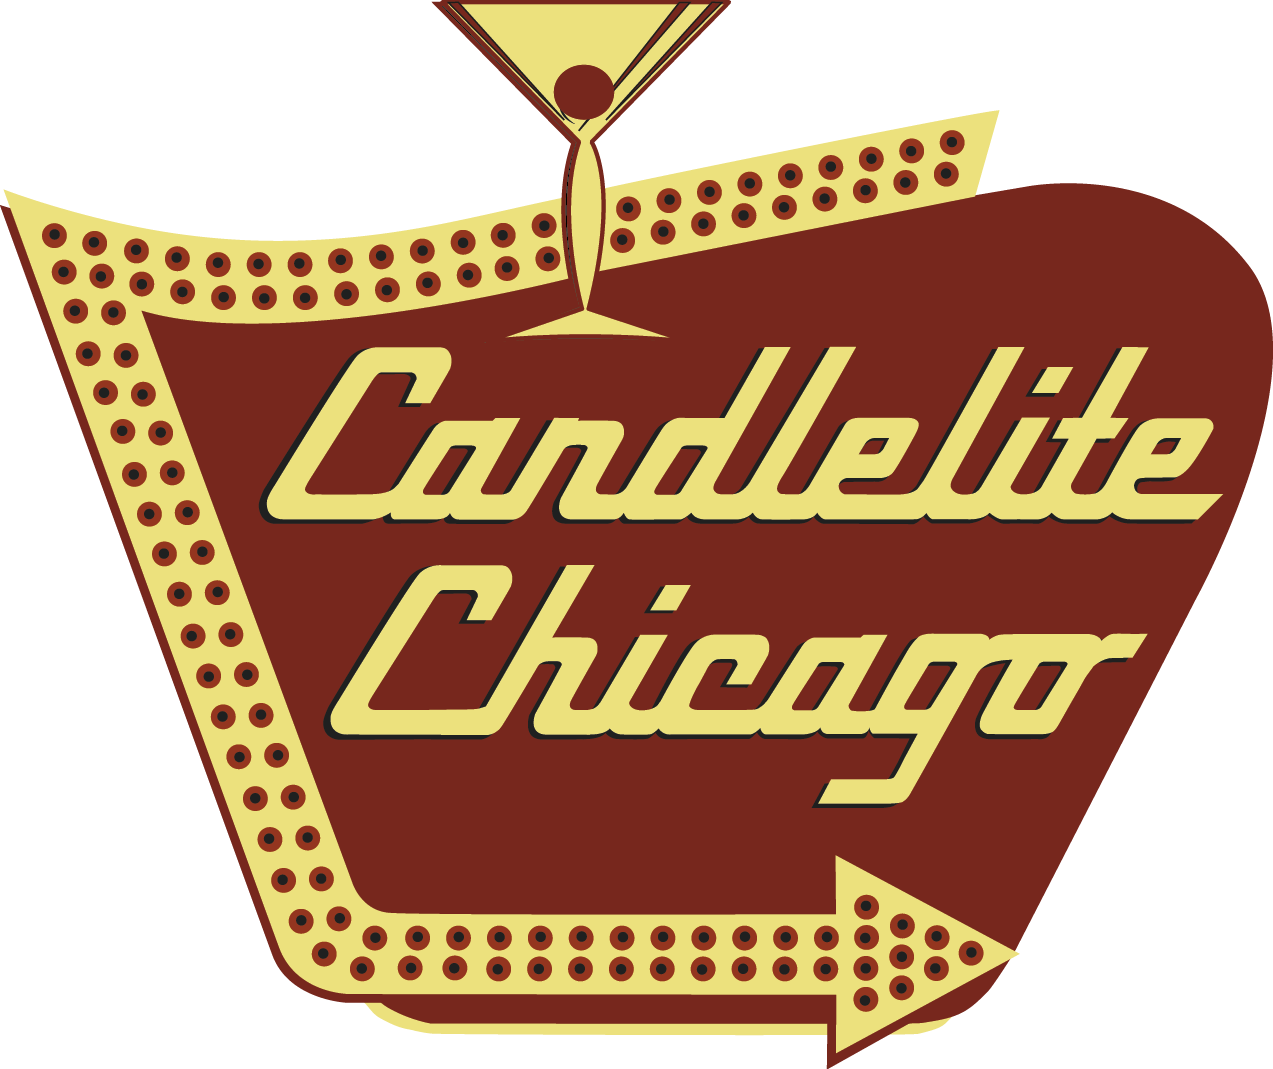 Candlelite Chicago